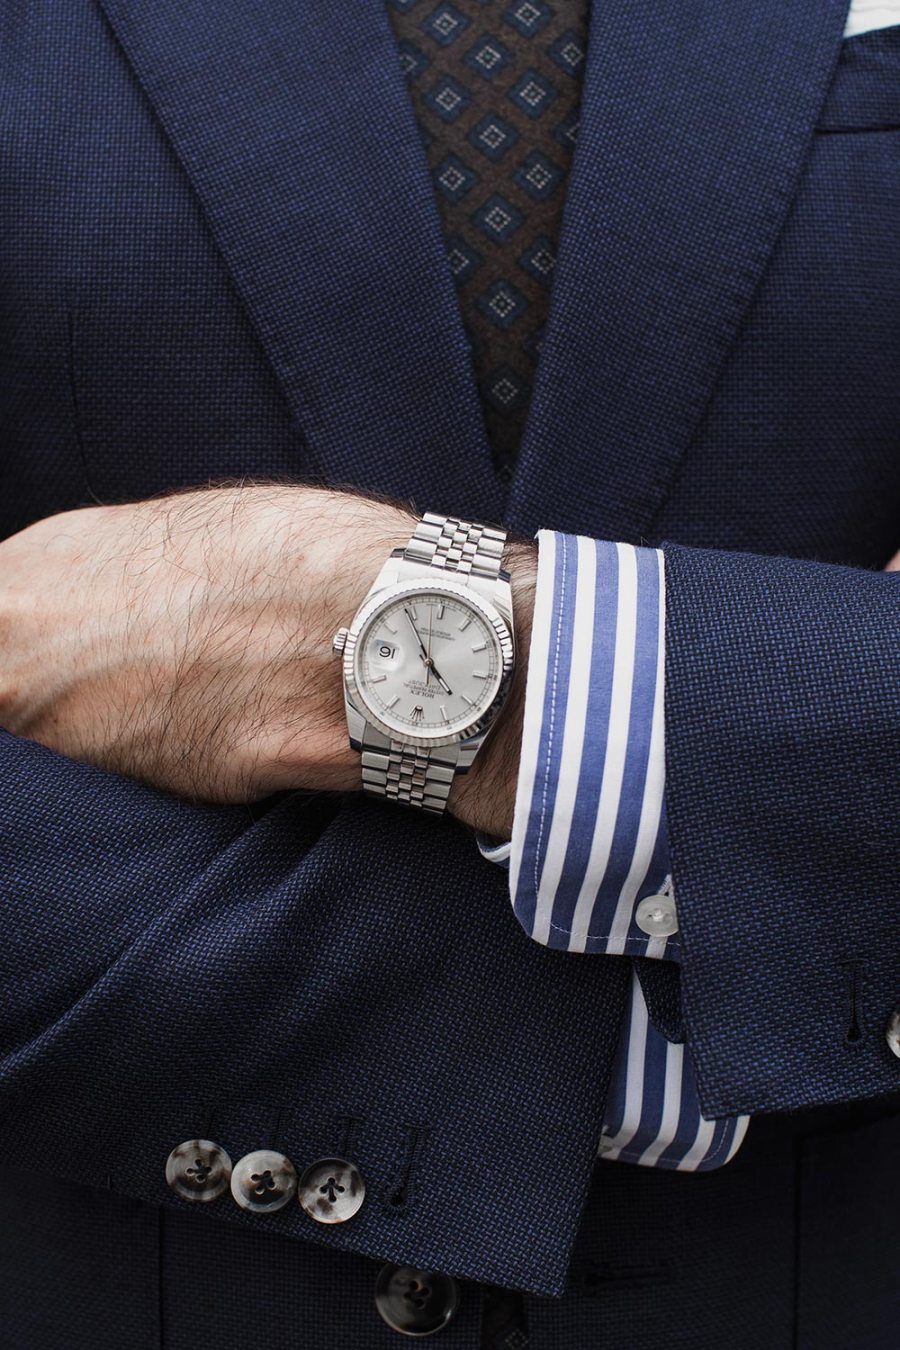 rolex-datejust-with-navy-suit